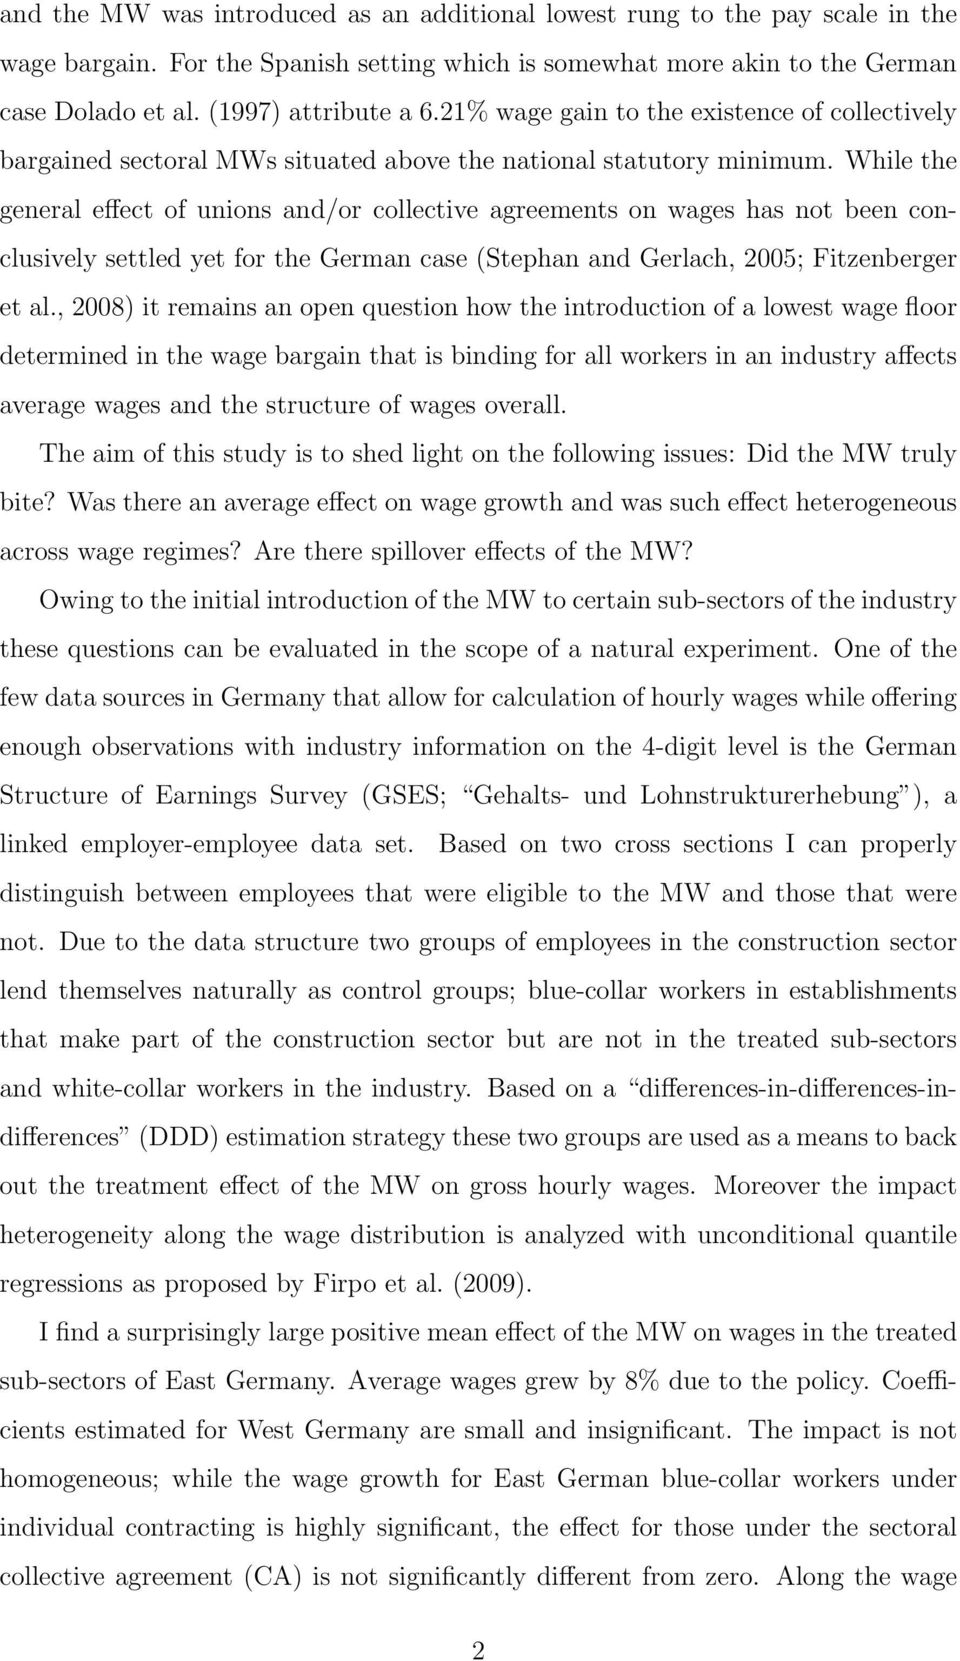 While the general effect of unions and/or collective agreements on wages has not been conclusively settled yet for the German case (Stephan and Gerlach, 2005; Fitzenberger et al.